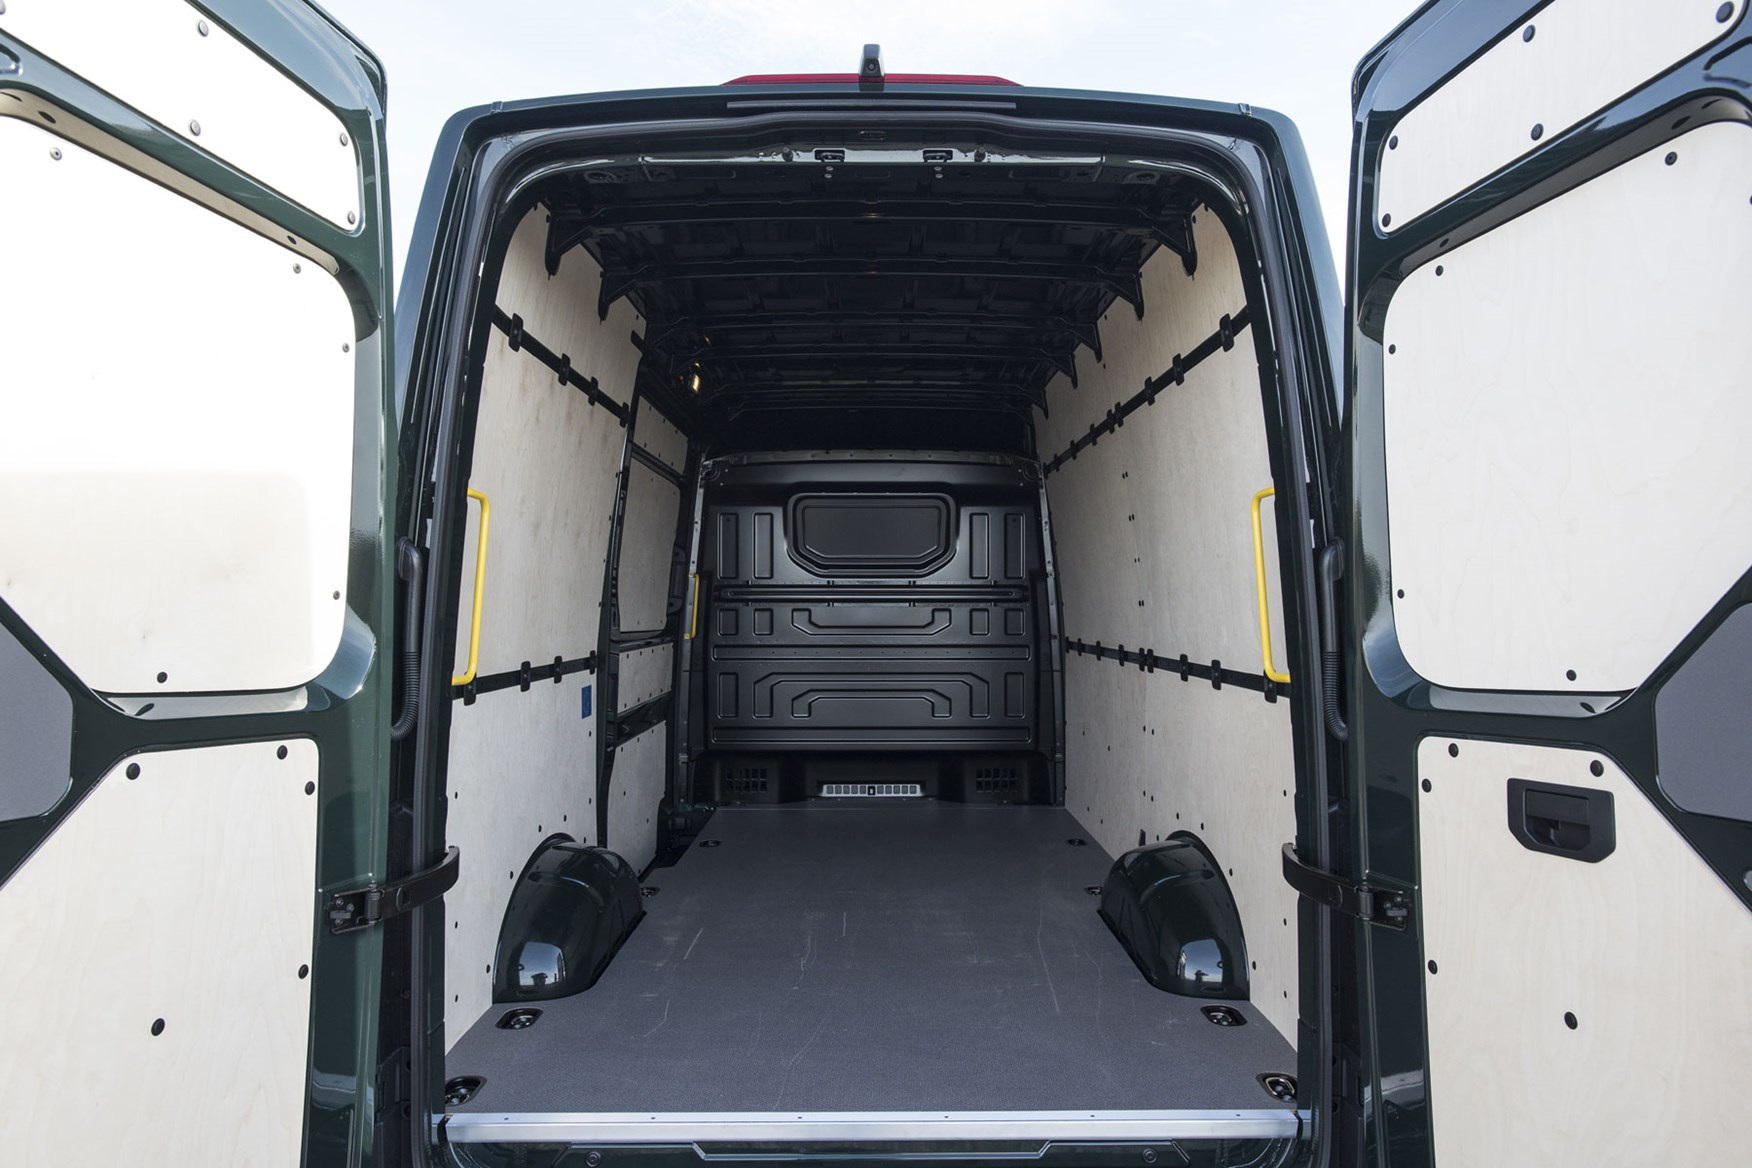 VW Crafter 4Motion review - load area